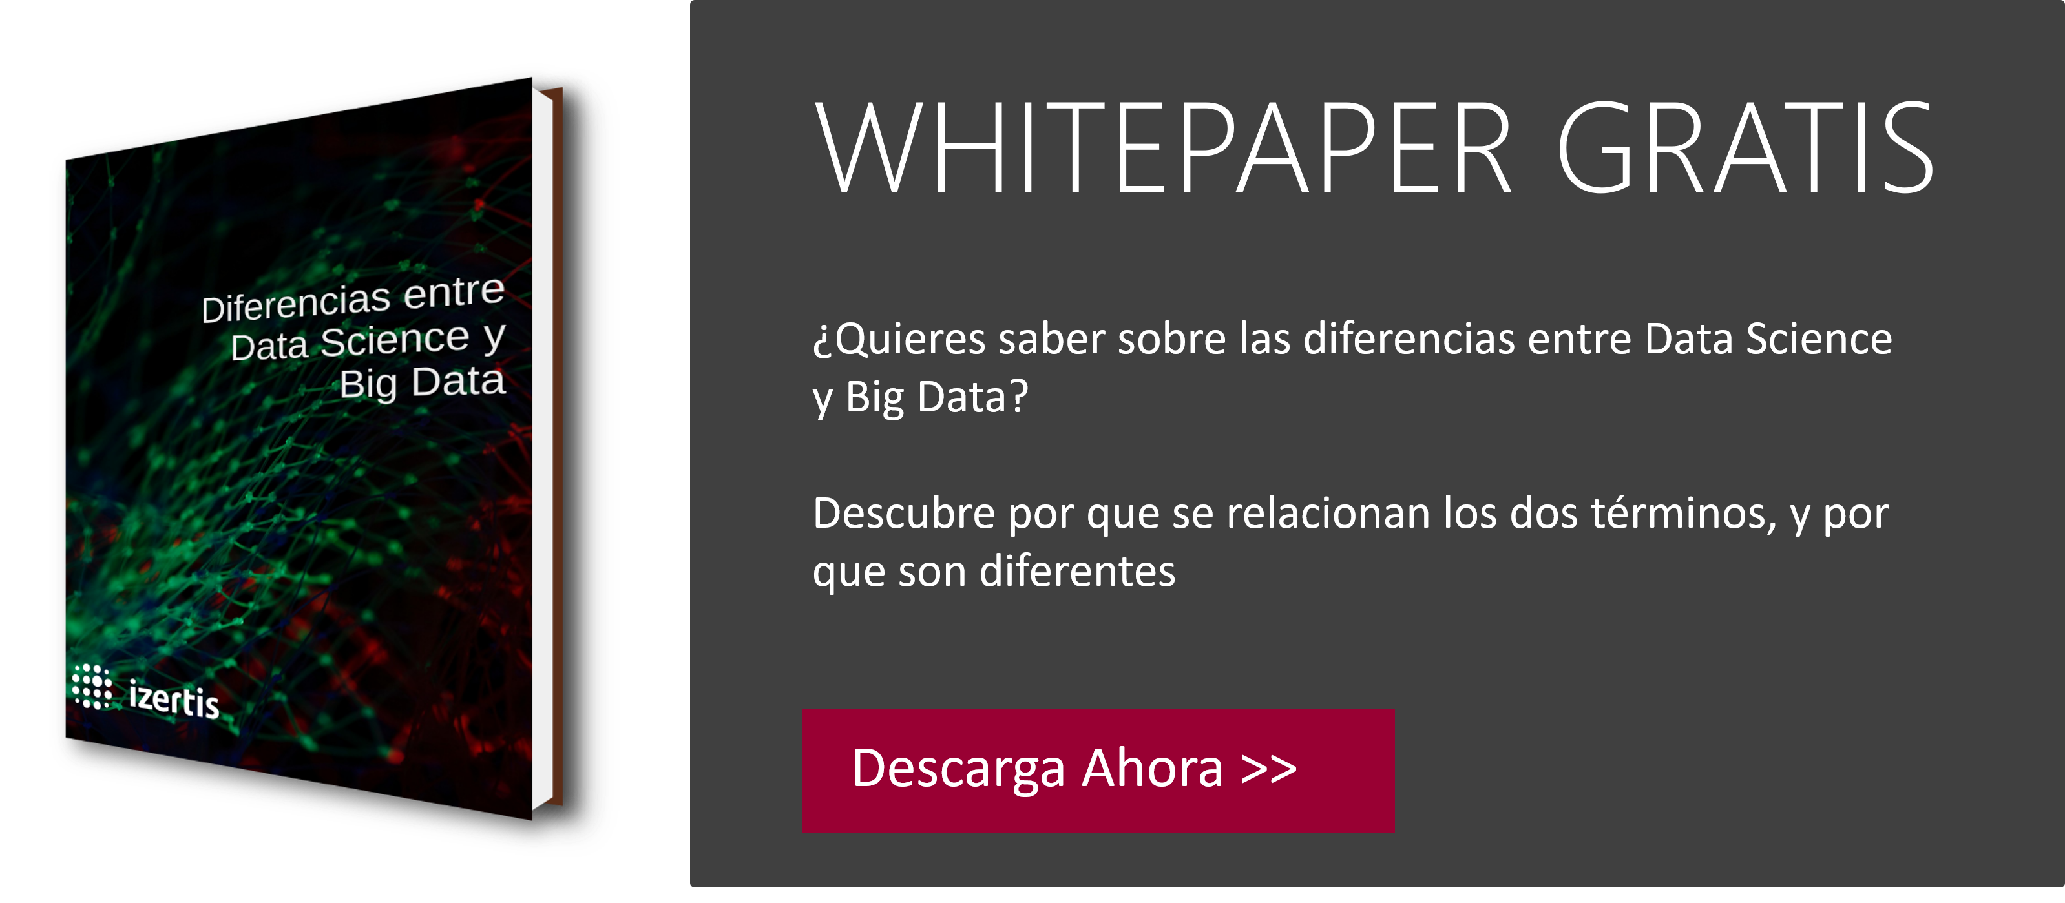 [Whitepaper] Diferencias entre Data Science y Big Data